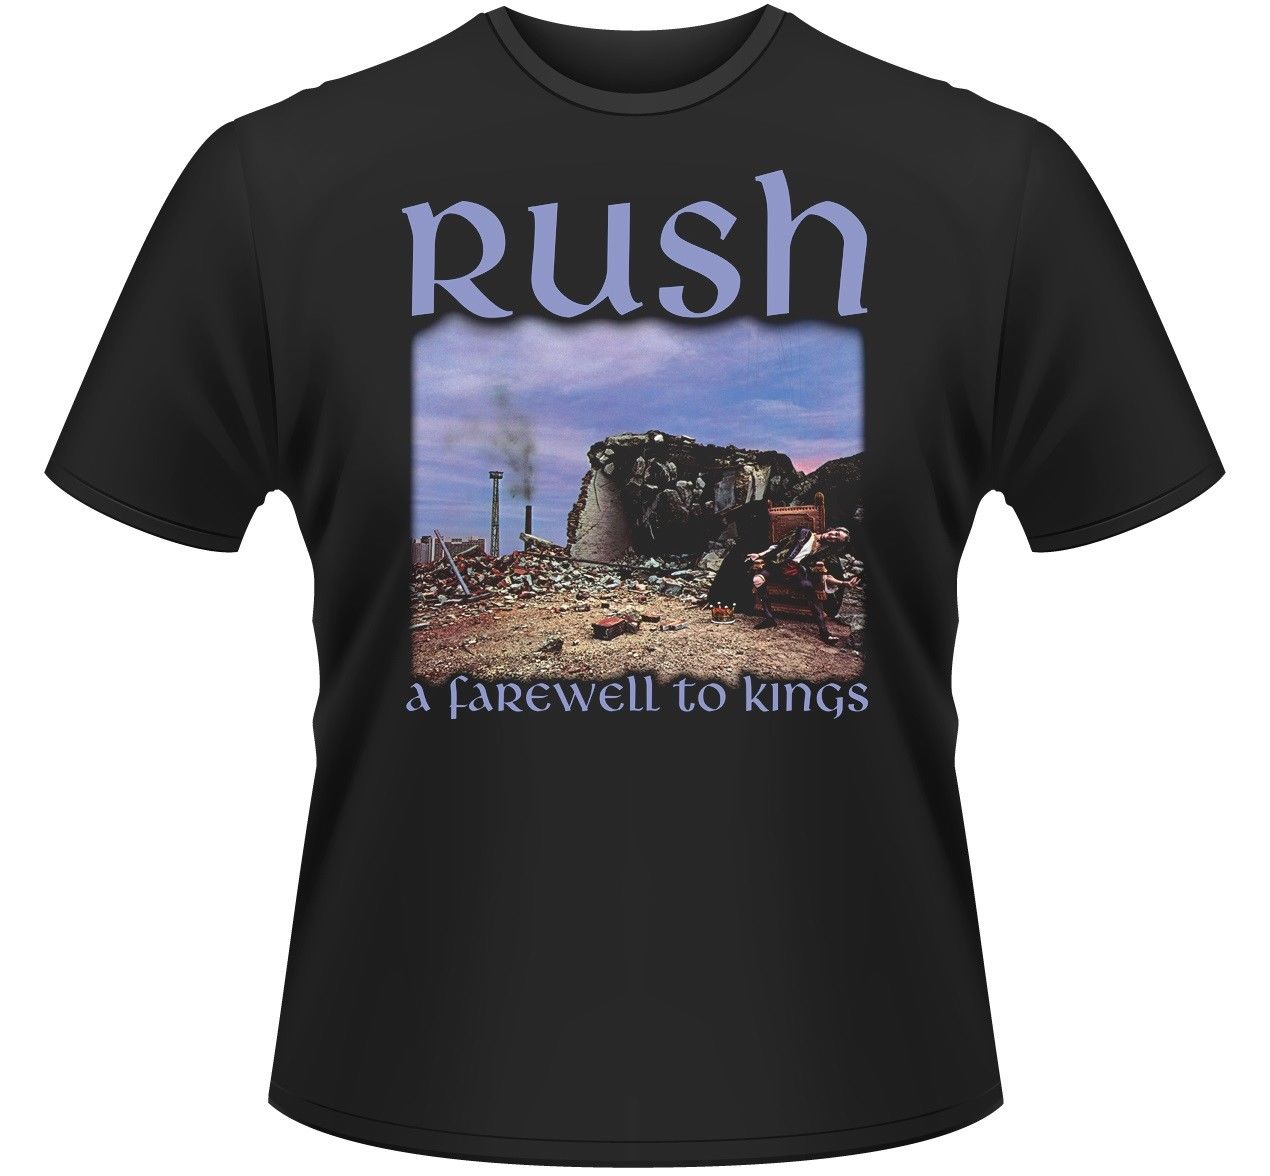 RUSH A FAREWELL TO KINGS T-SHIRT - NUOVO E ORIGINALE